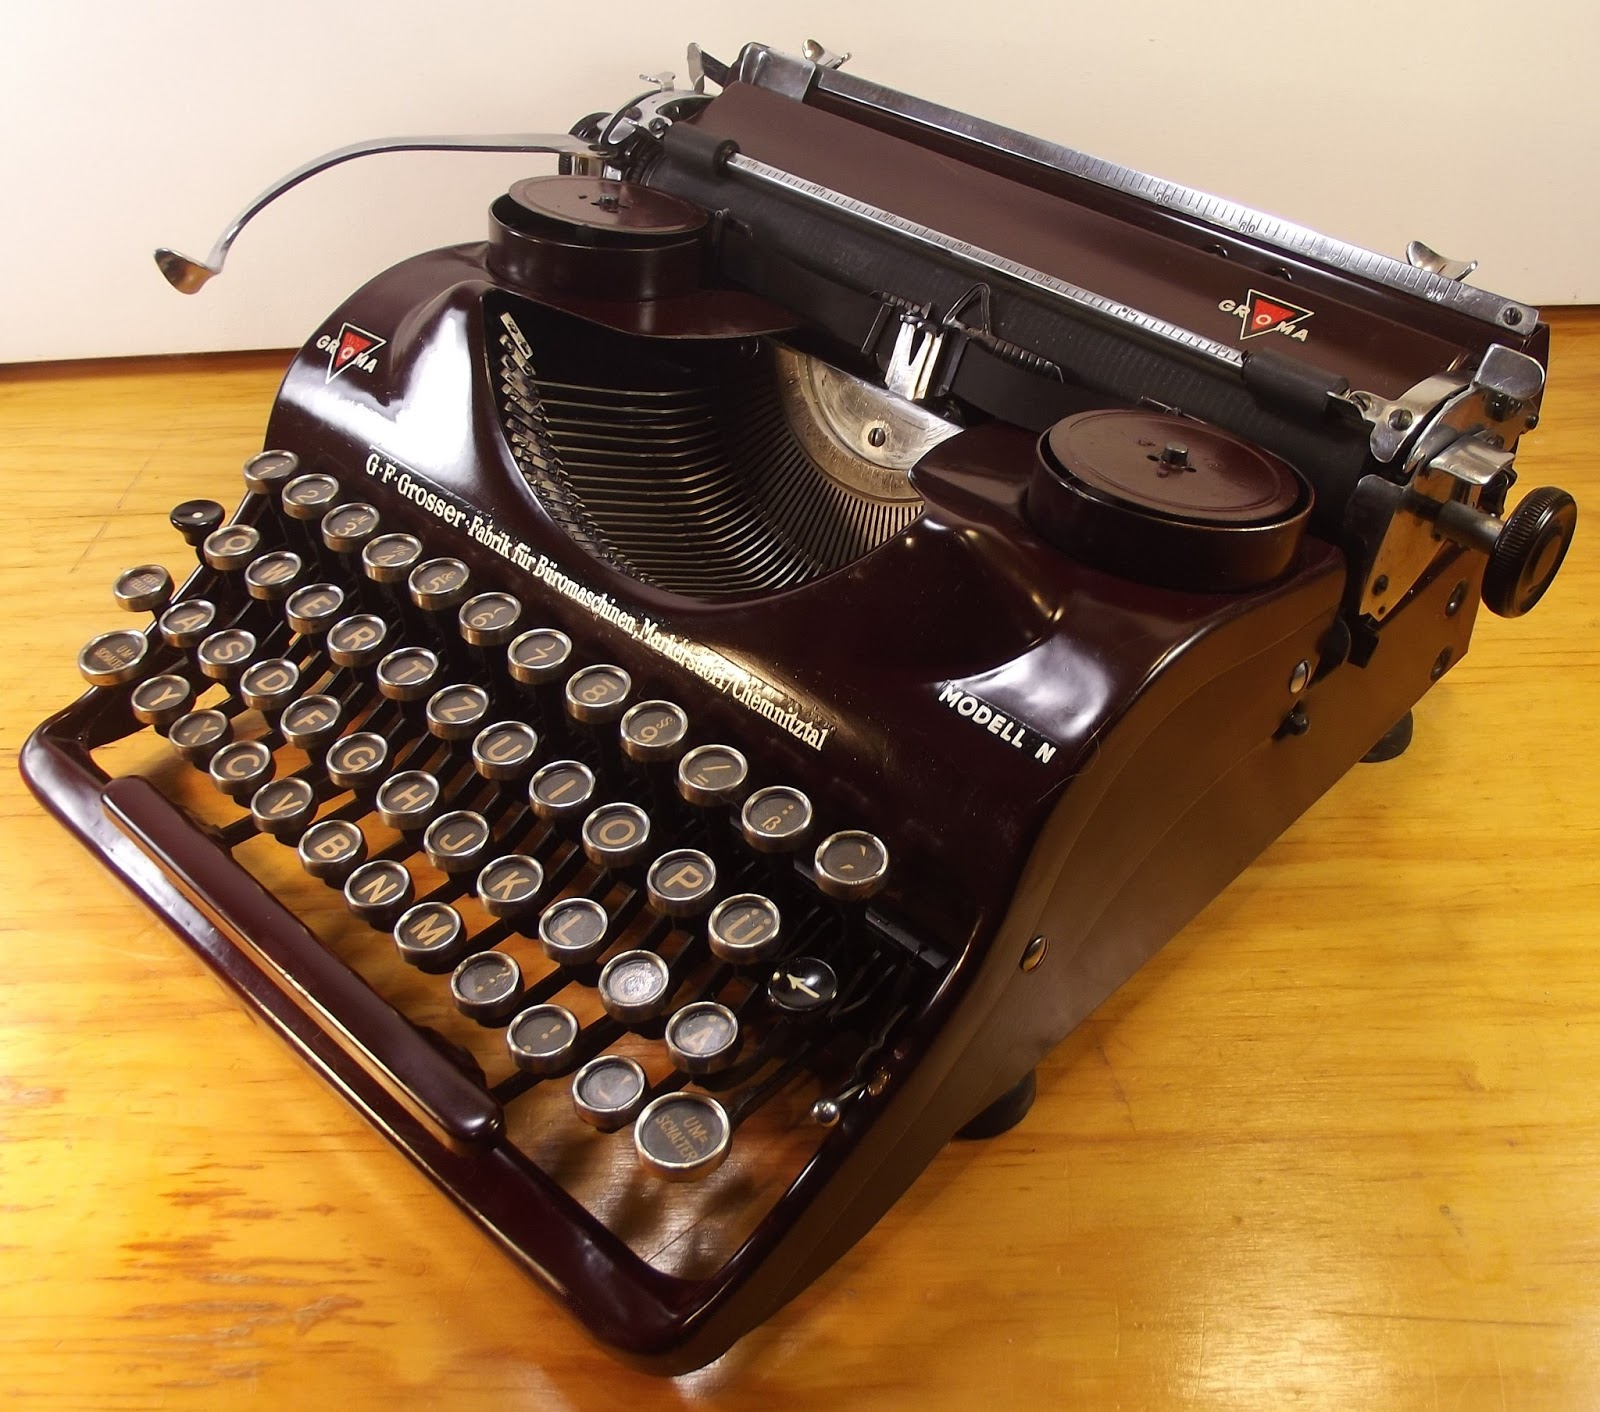 Oz.Typewriter: Night Of The Maroons: New (Old) Prime